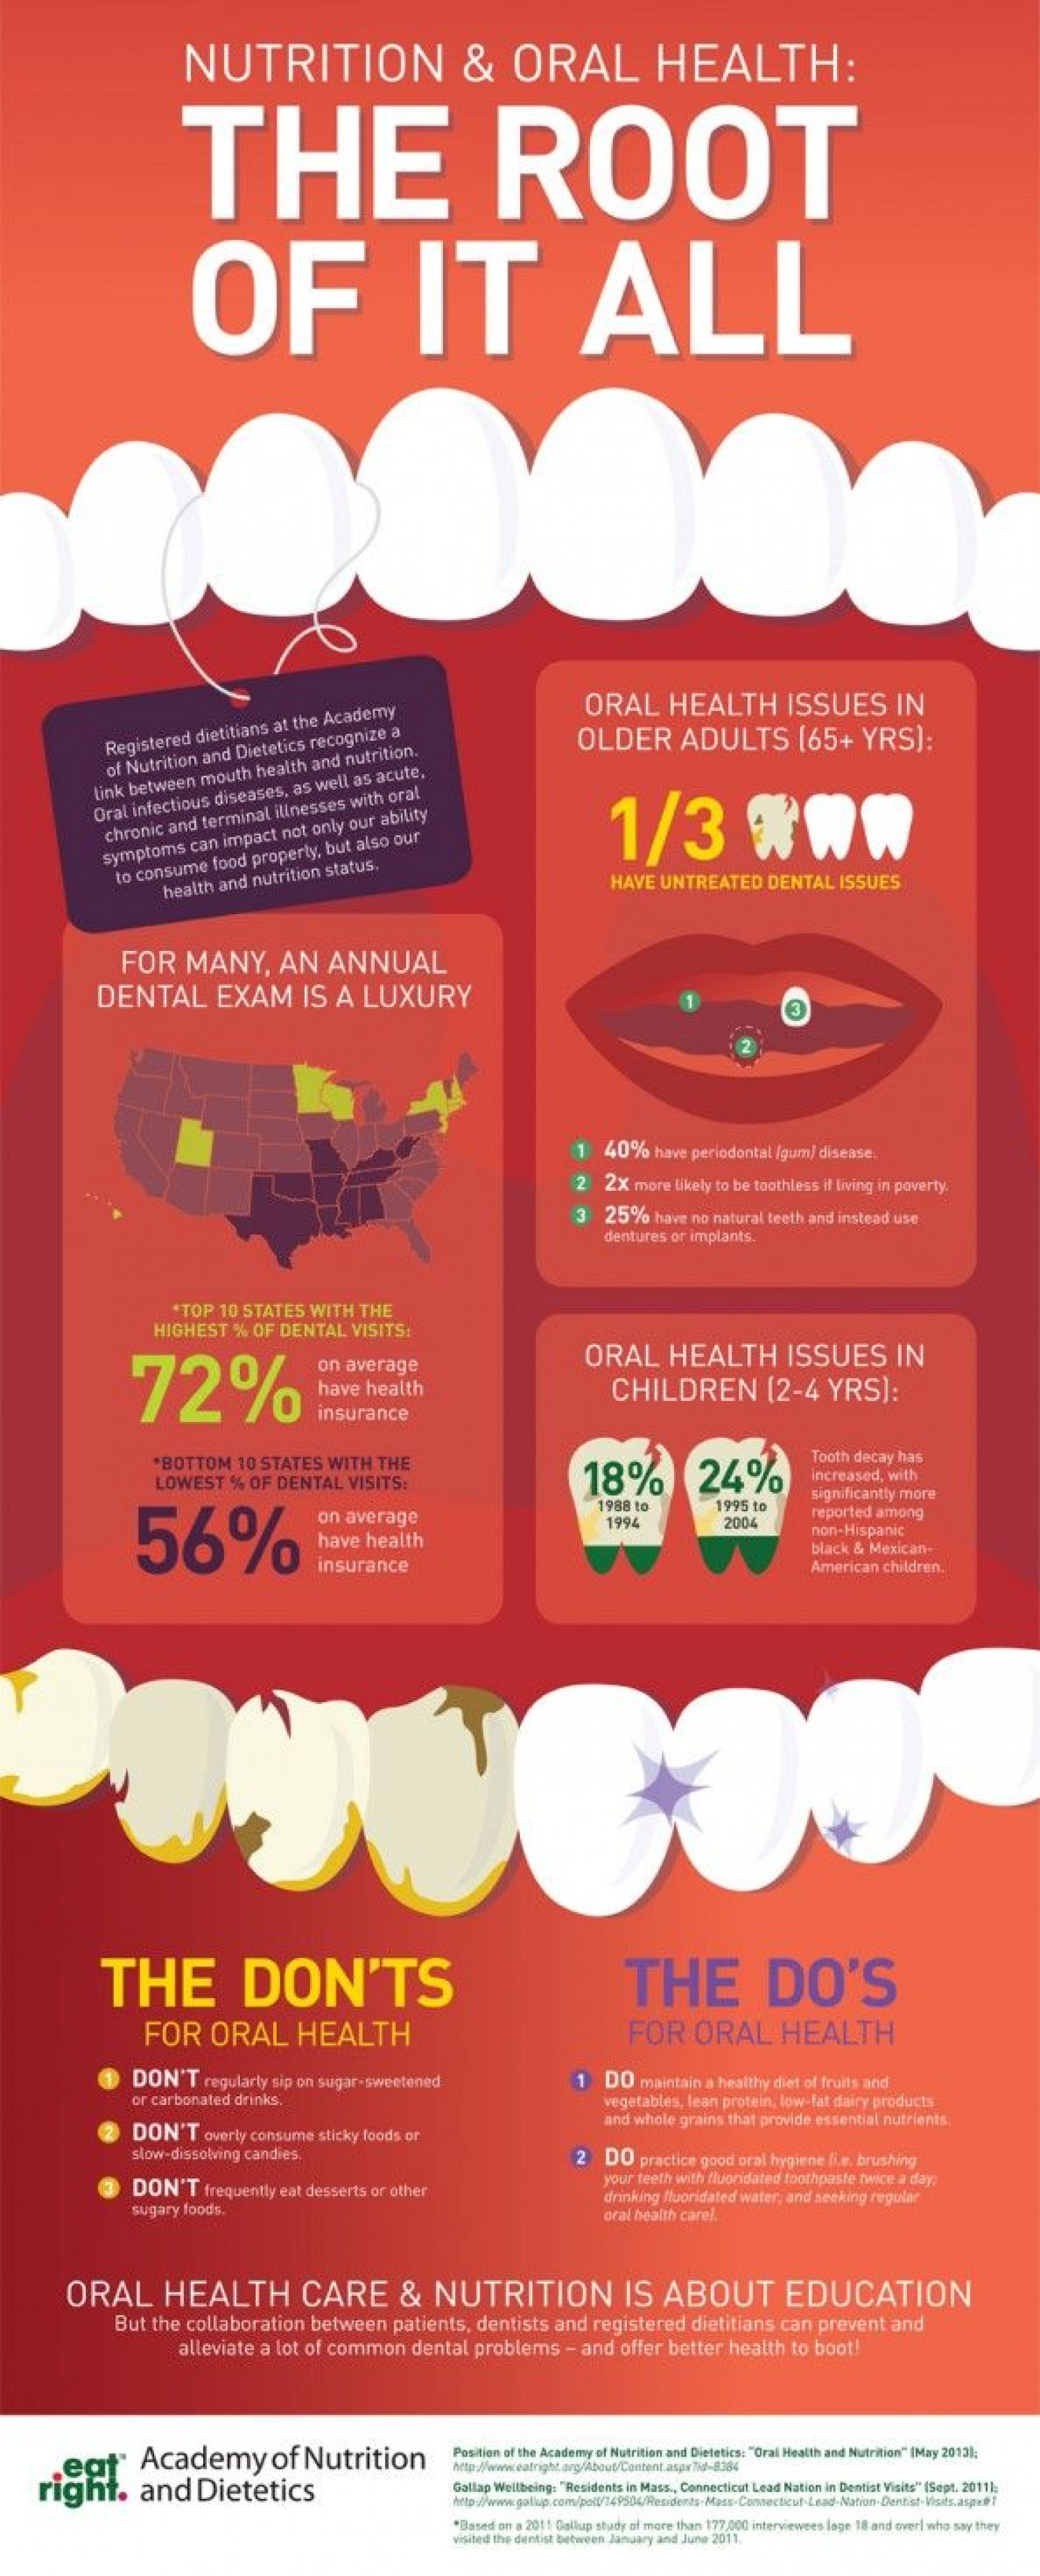 Academy of Nutrition & Dietetics: Nutrition & Oral Health Infographic